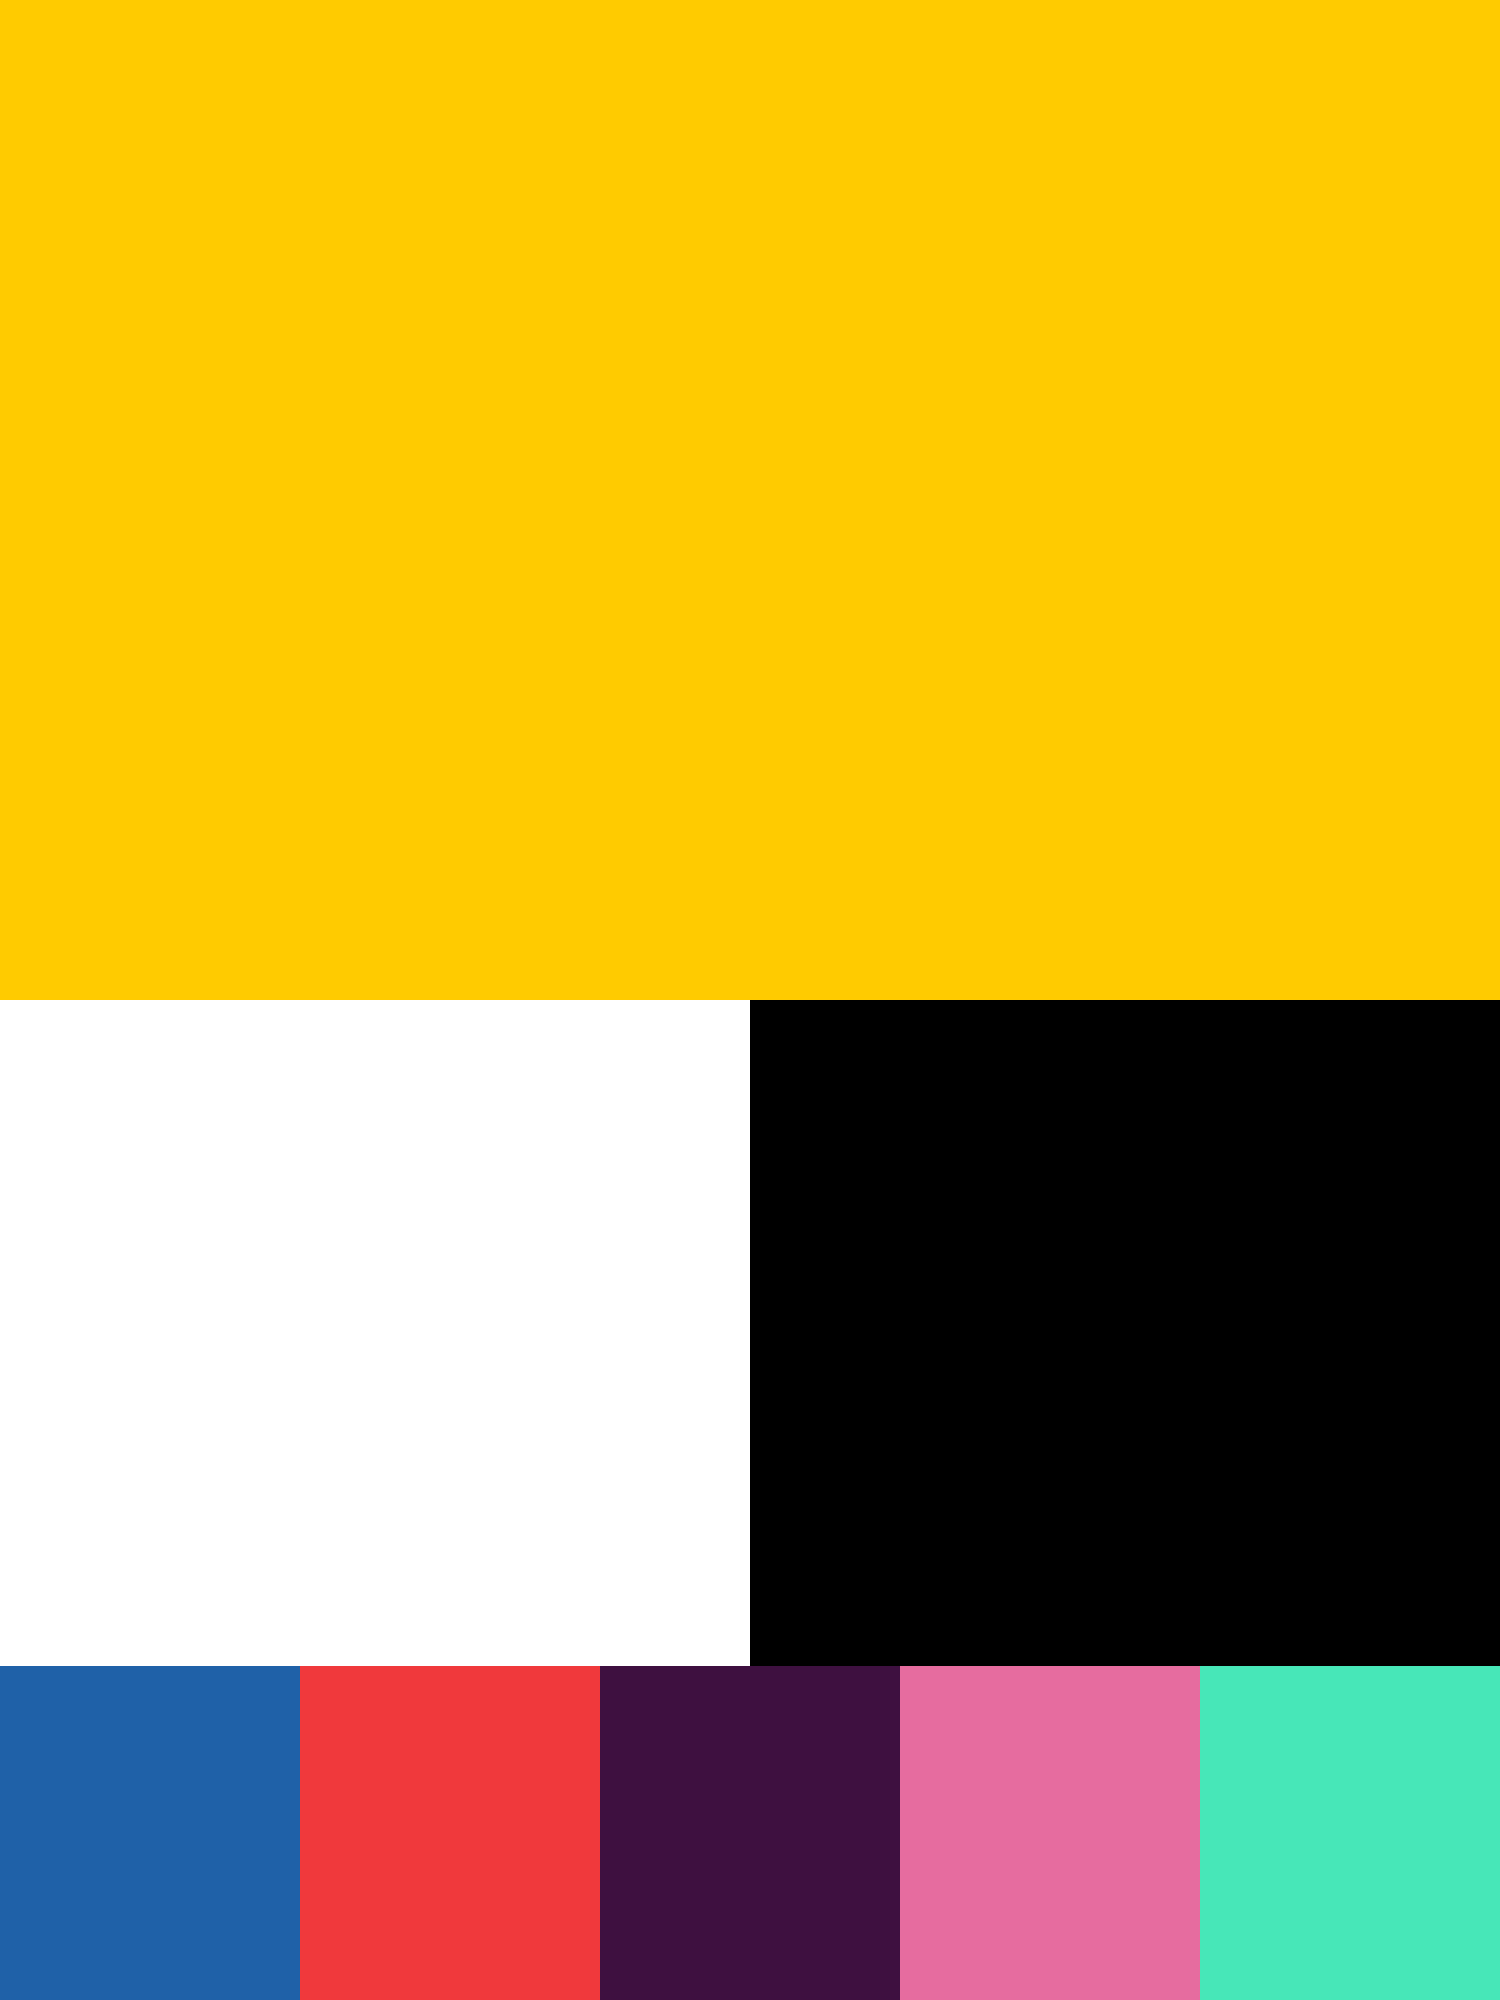 color.png